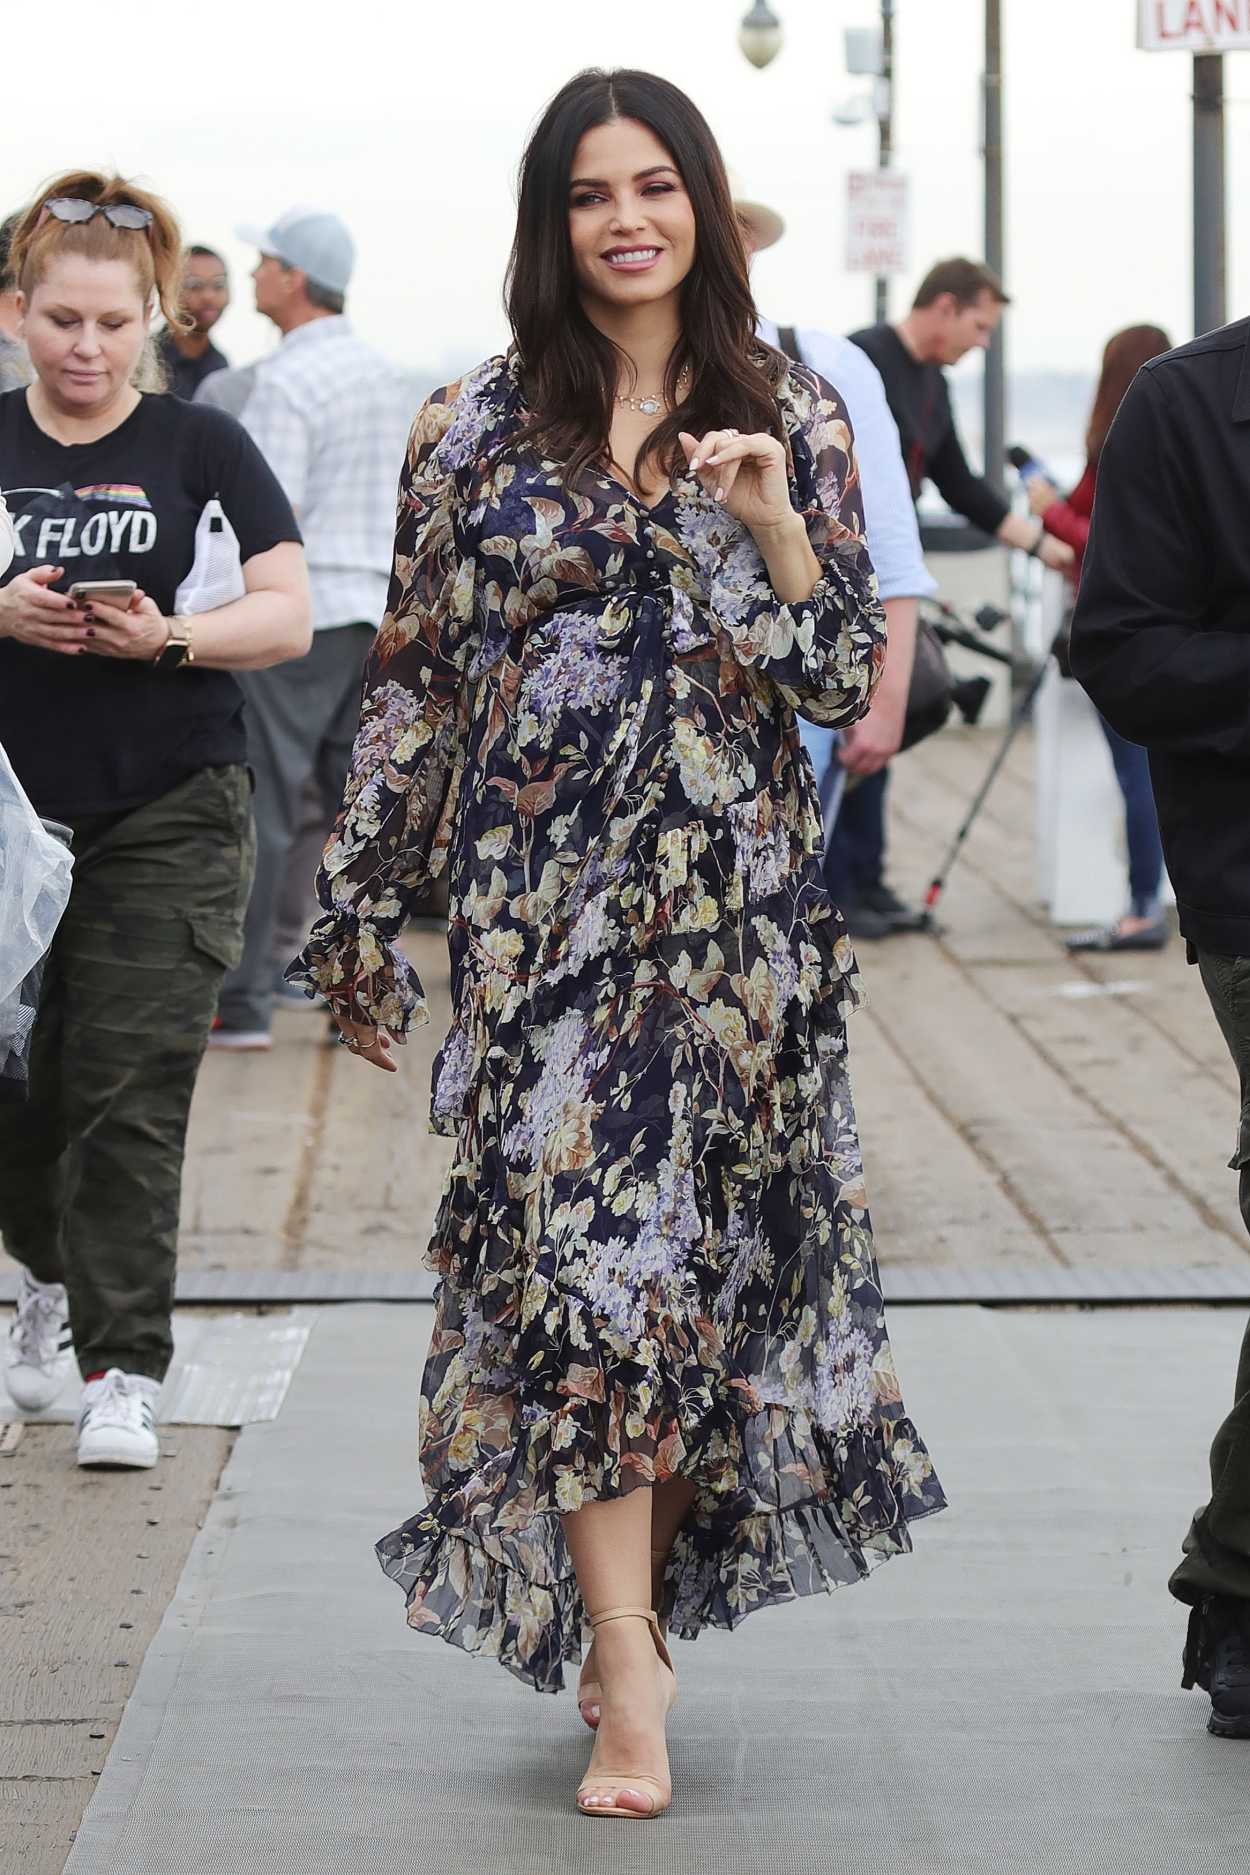 Jenna Dewan in a Floral Dress on the Set of Flirty Dancing in Santa Monica 11/19/2019